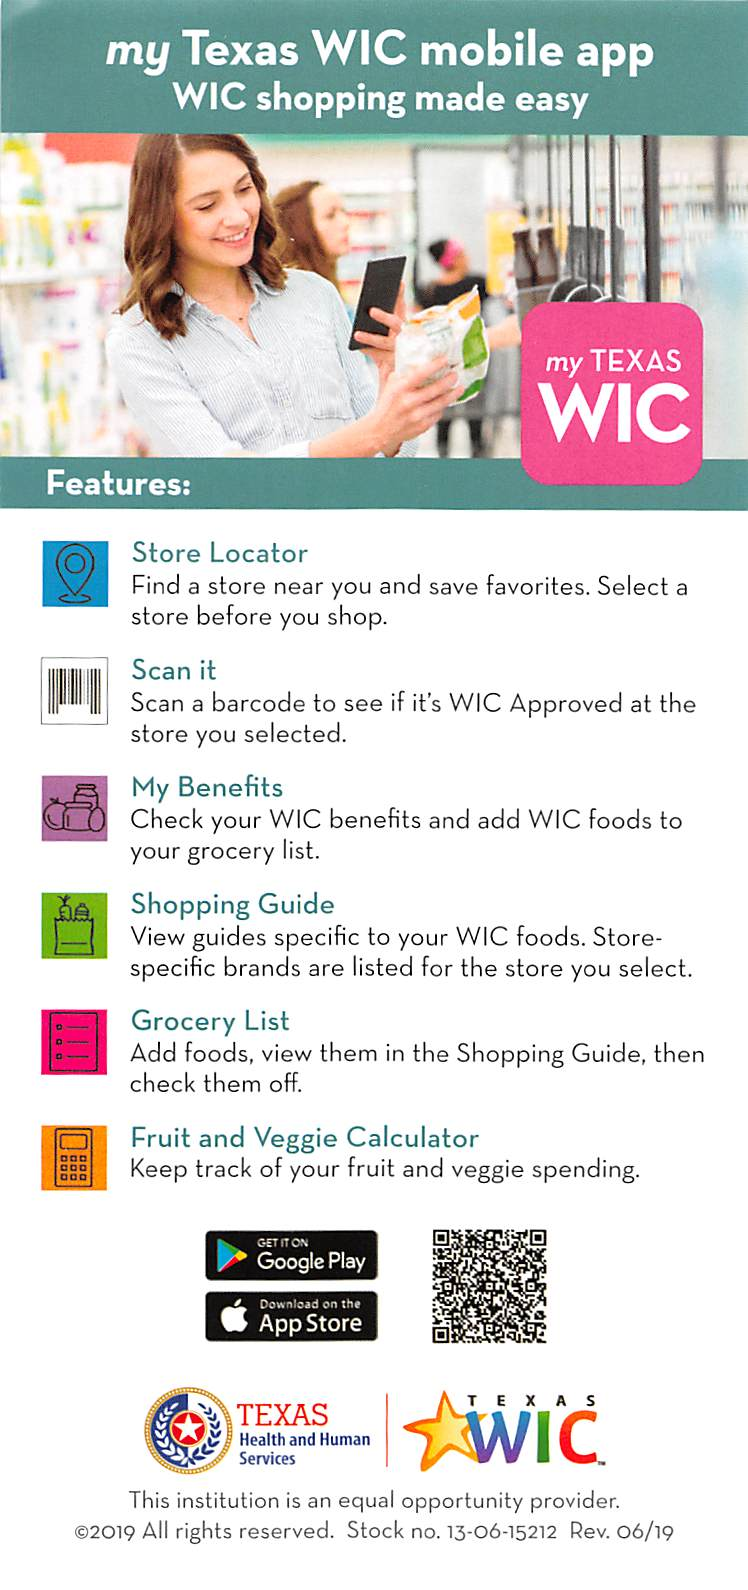 Texas WIC App Information